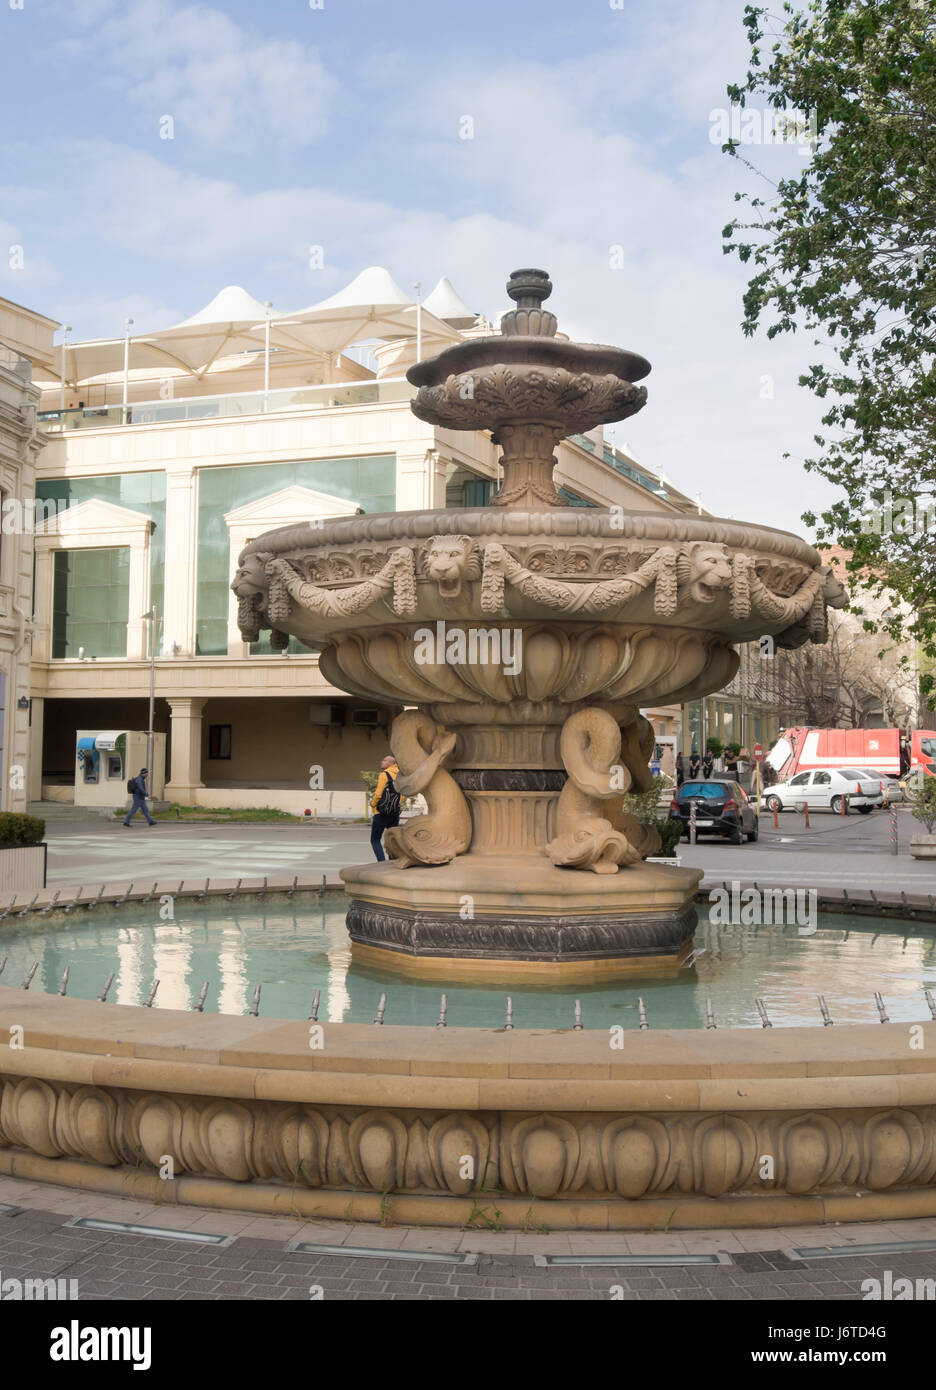 Fountain Decorated With Elaborate Stone Carvings In Nizami Street, Shopping  Area In Inner City Baku Azerbaijan